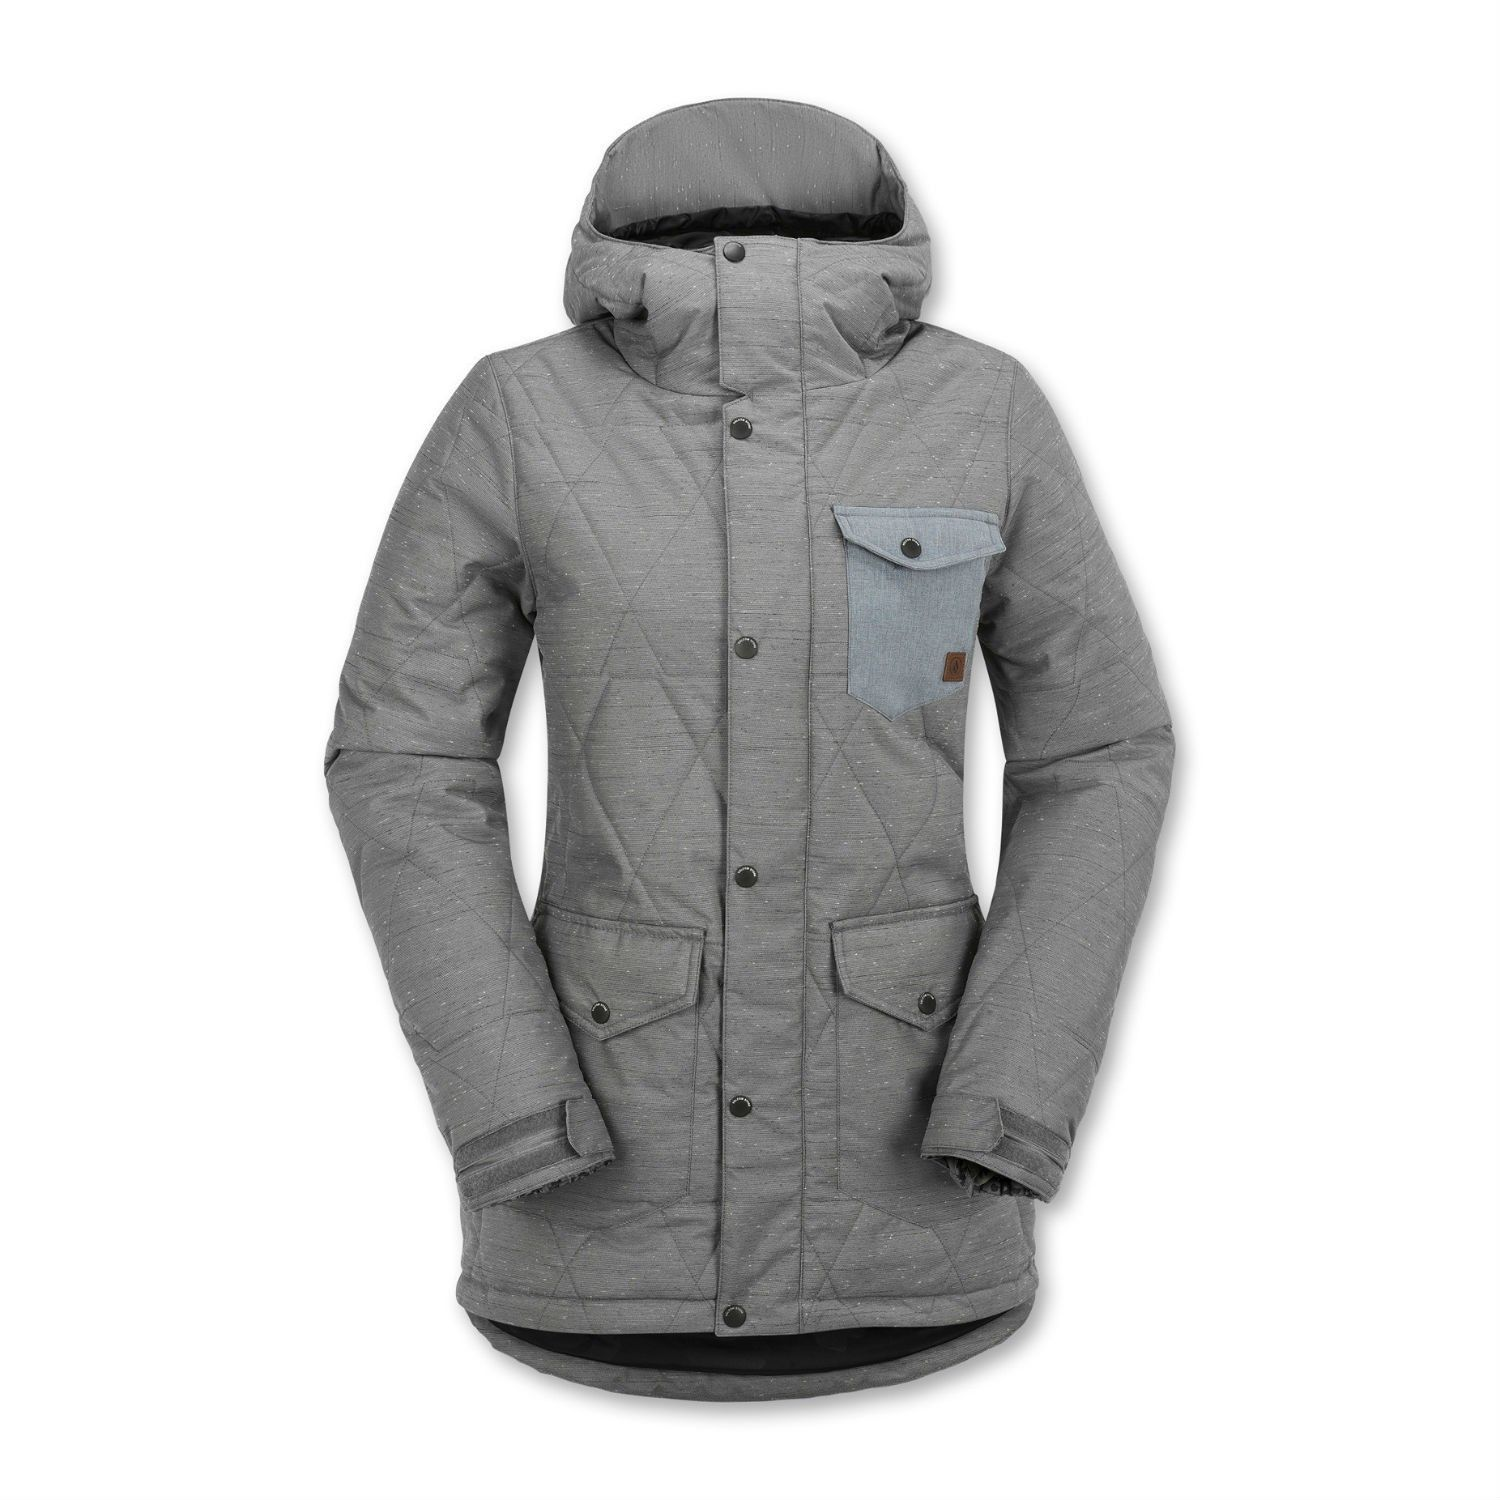 Super Warm With 120g Of Quilted Low Loft Insulation The 2016 Volcom Bridge Insulated Women Rsquo S With Images Insulated Jackets Jackets For Women Womens Snowboard Jacket